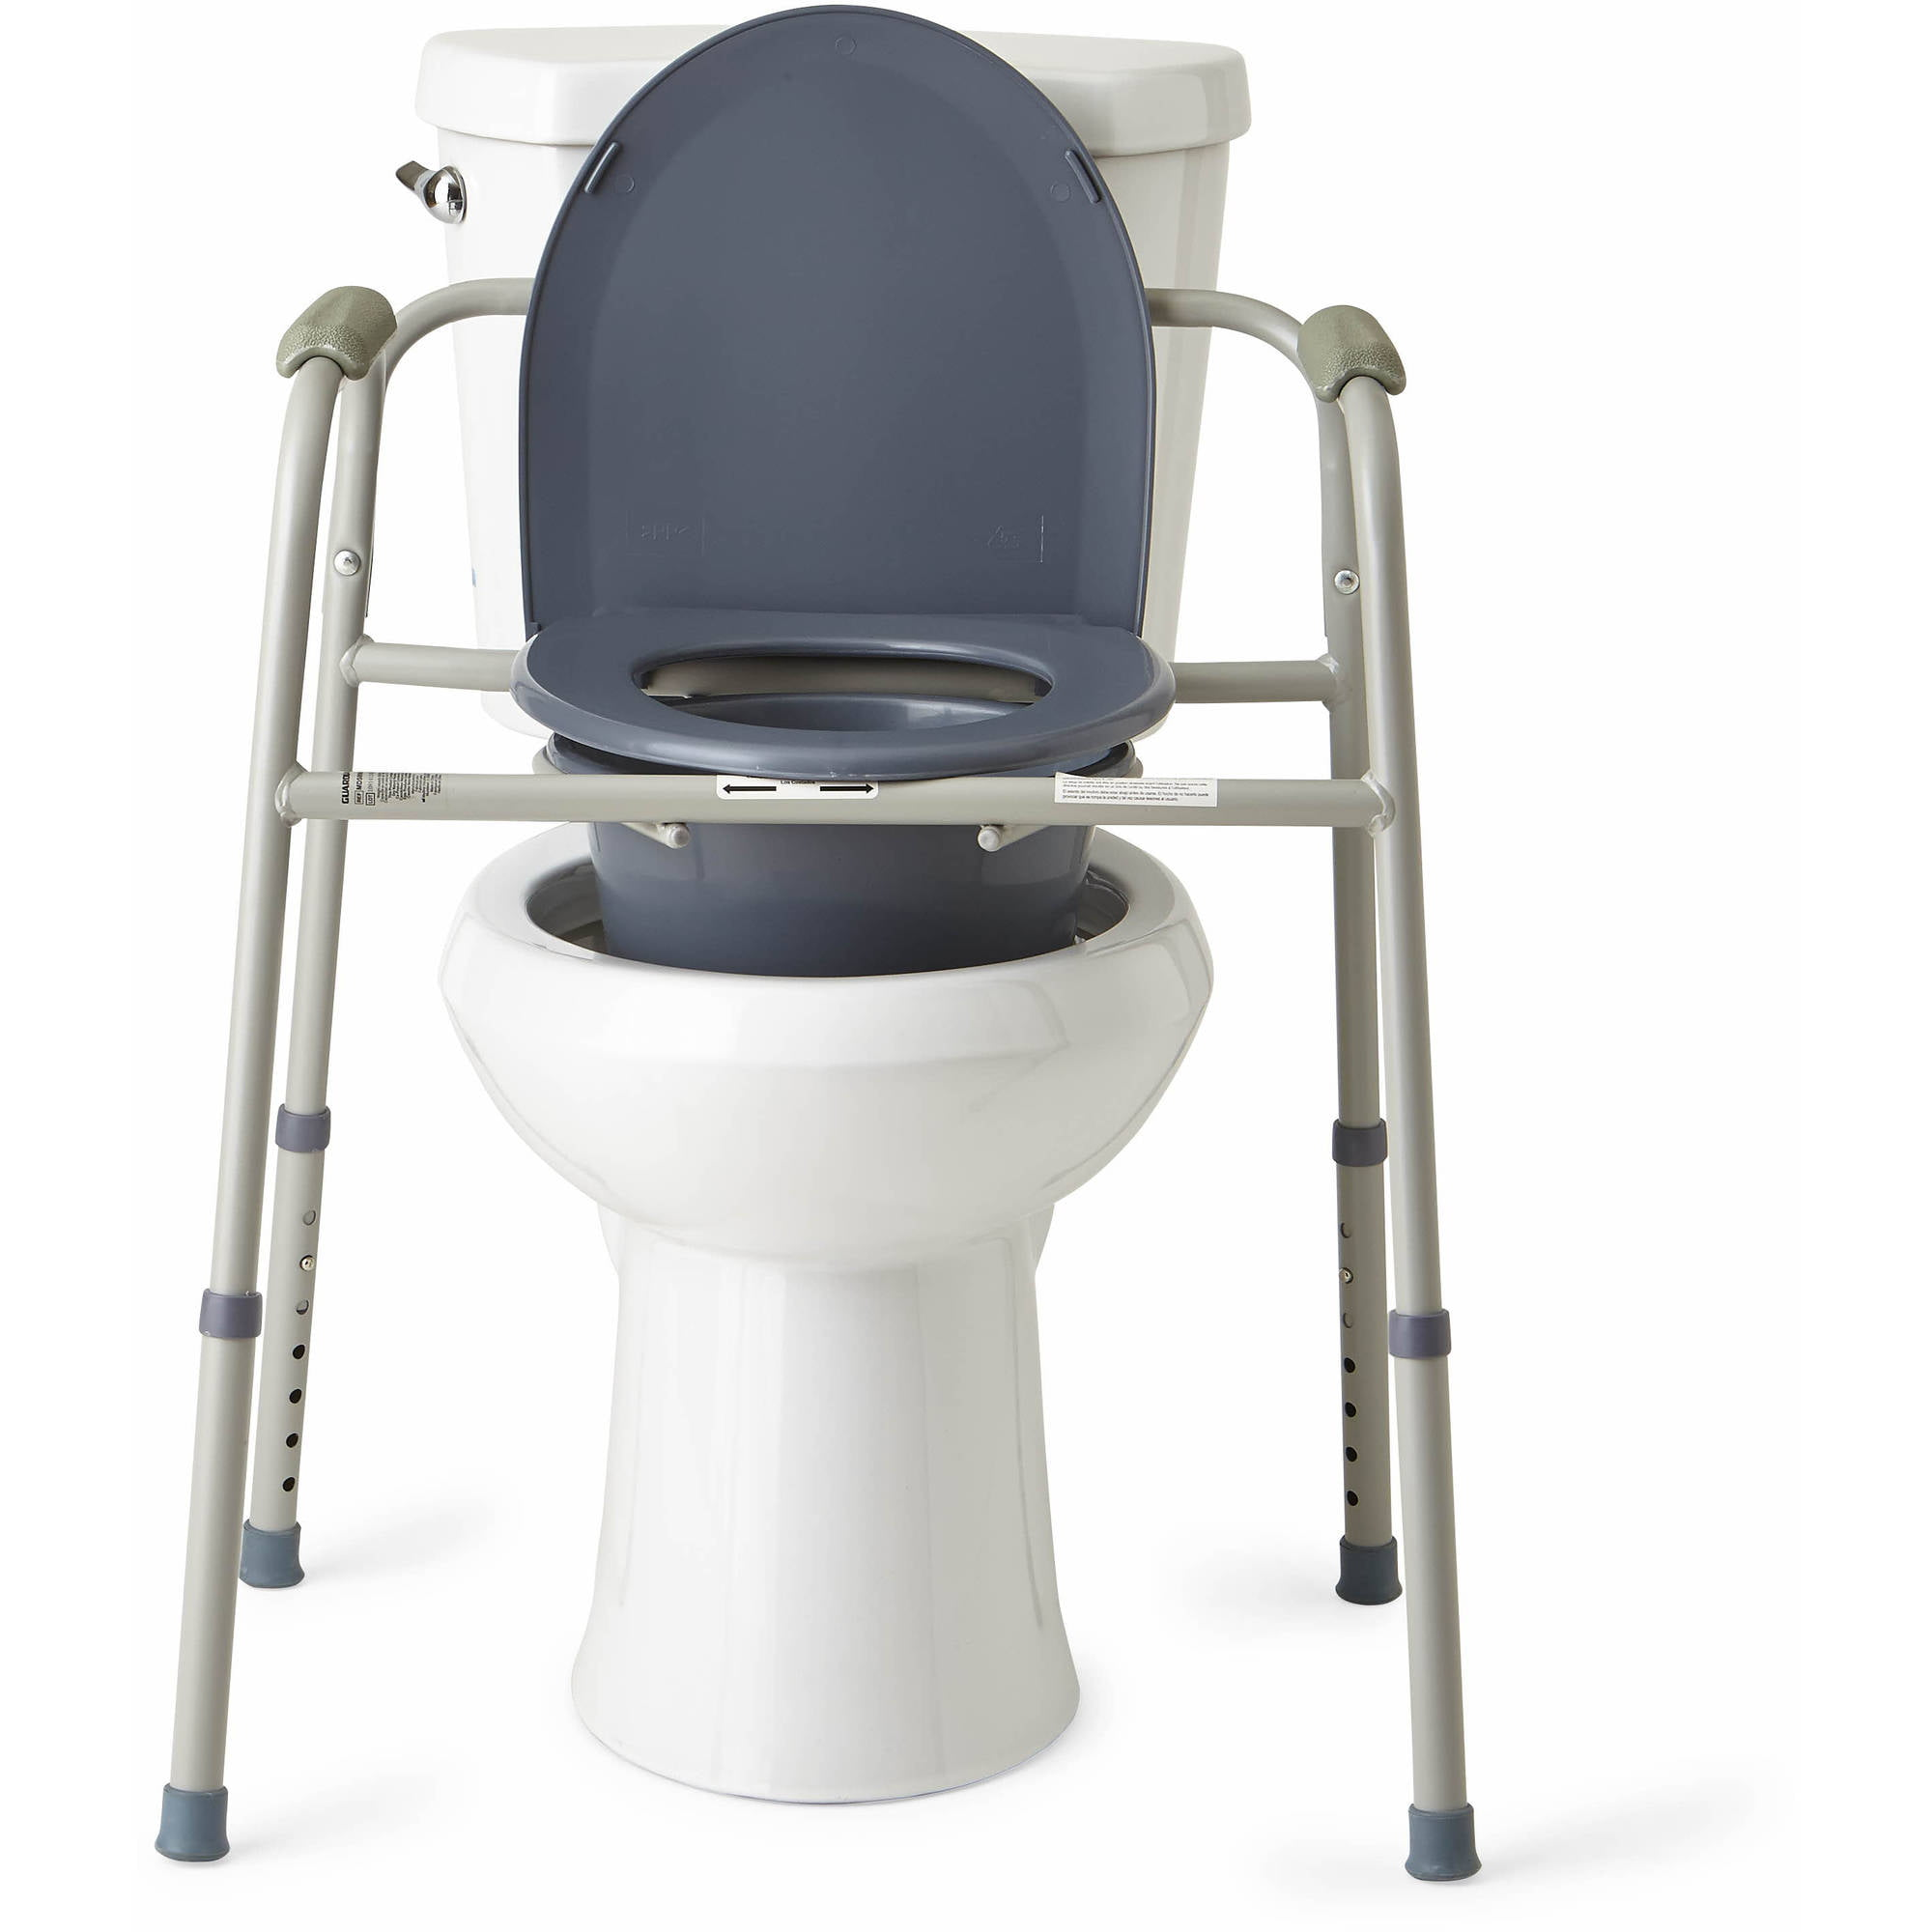 sc 1 st  Walmart & Medline Steel 3-in-1 Bedside Toilet Commode - Walmart.com